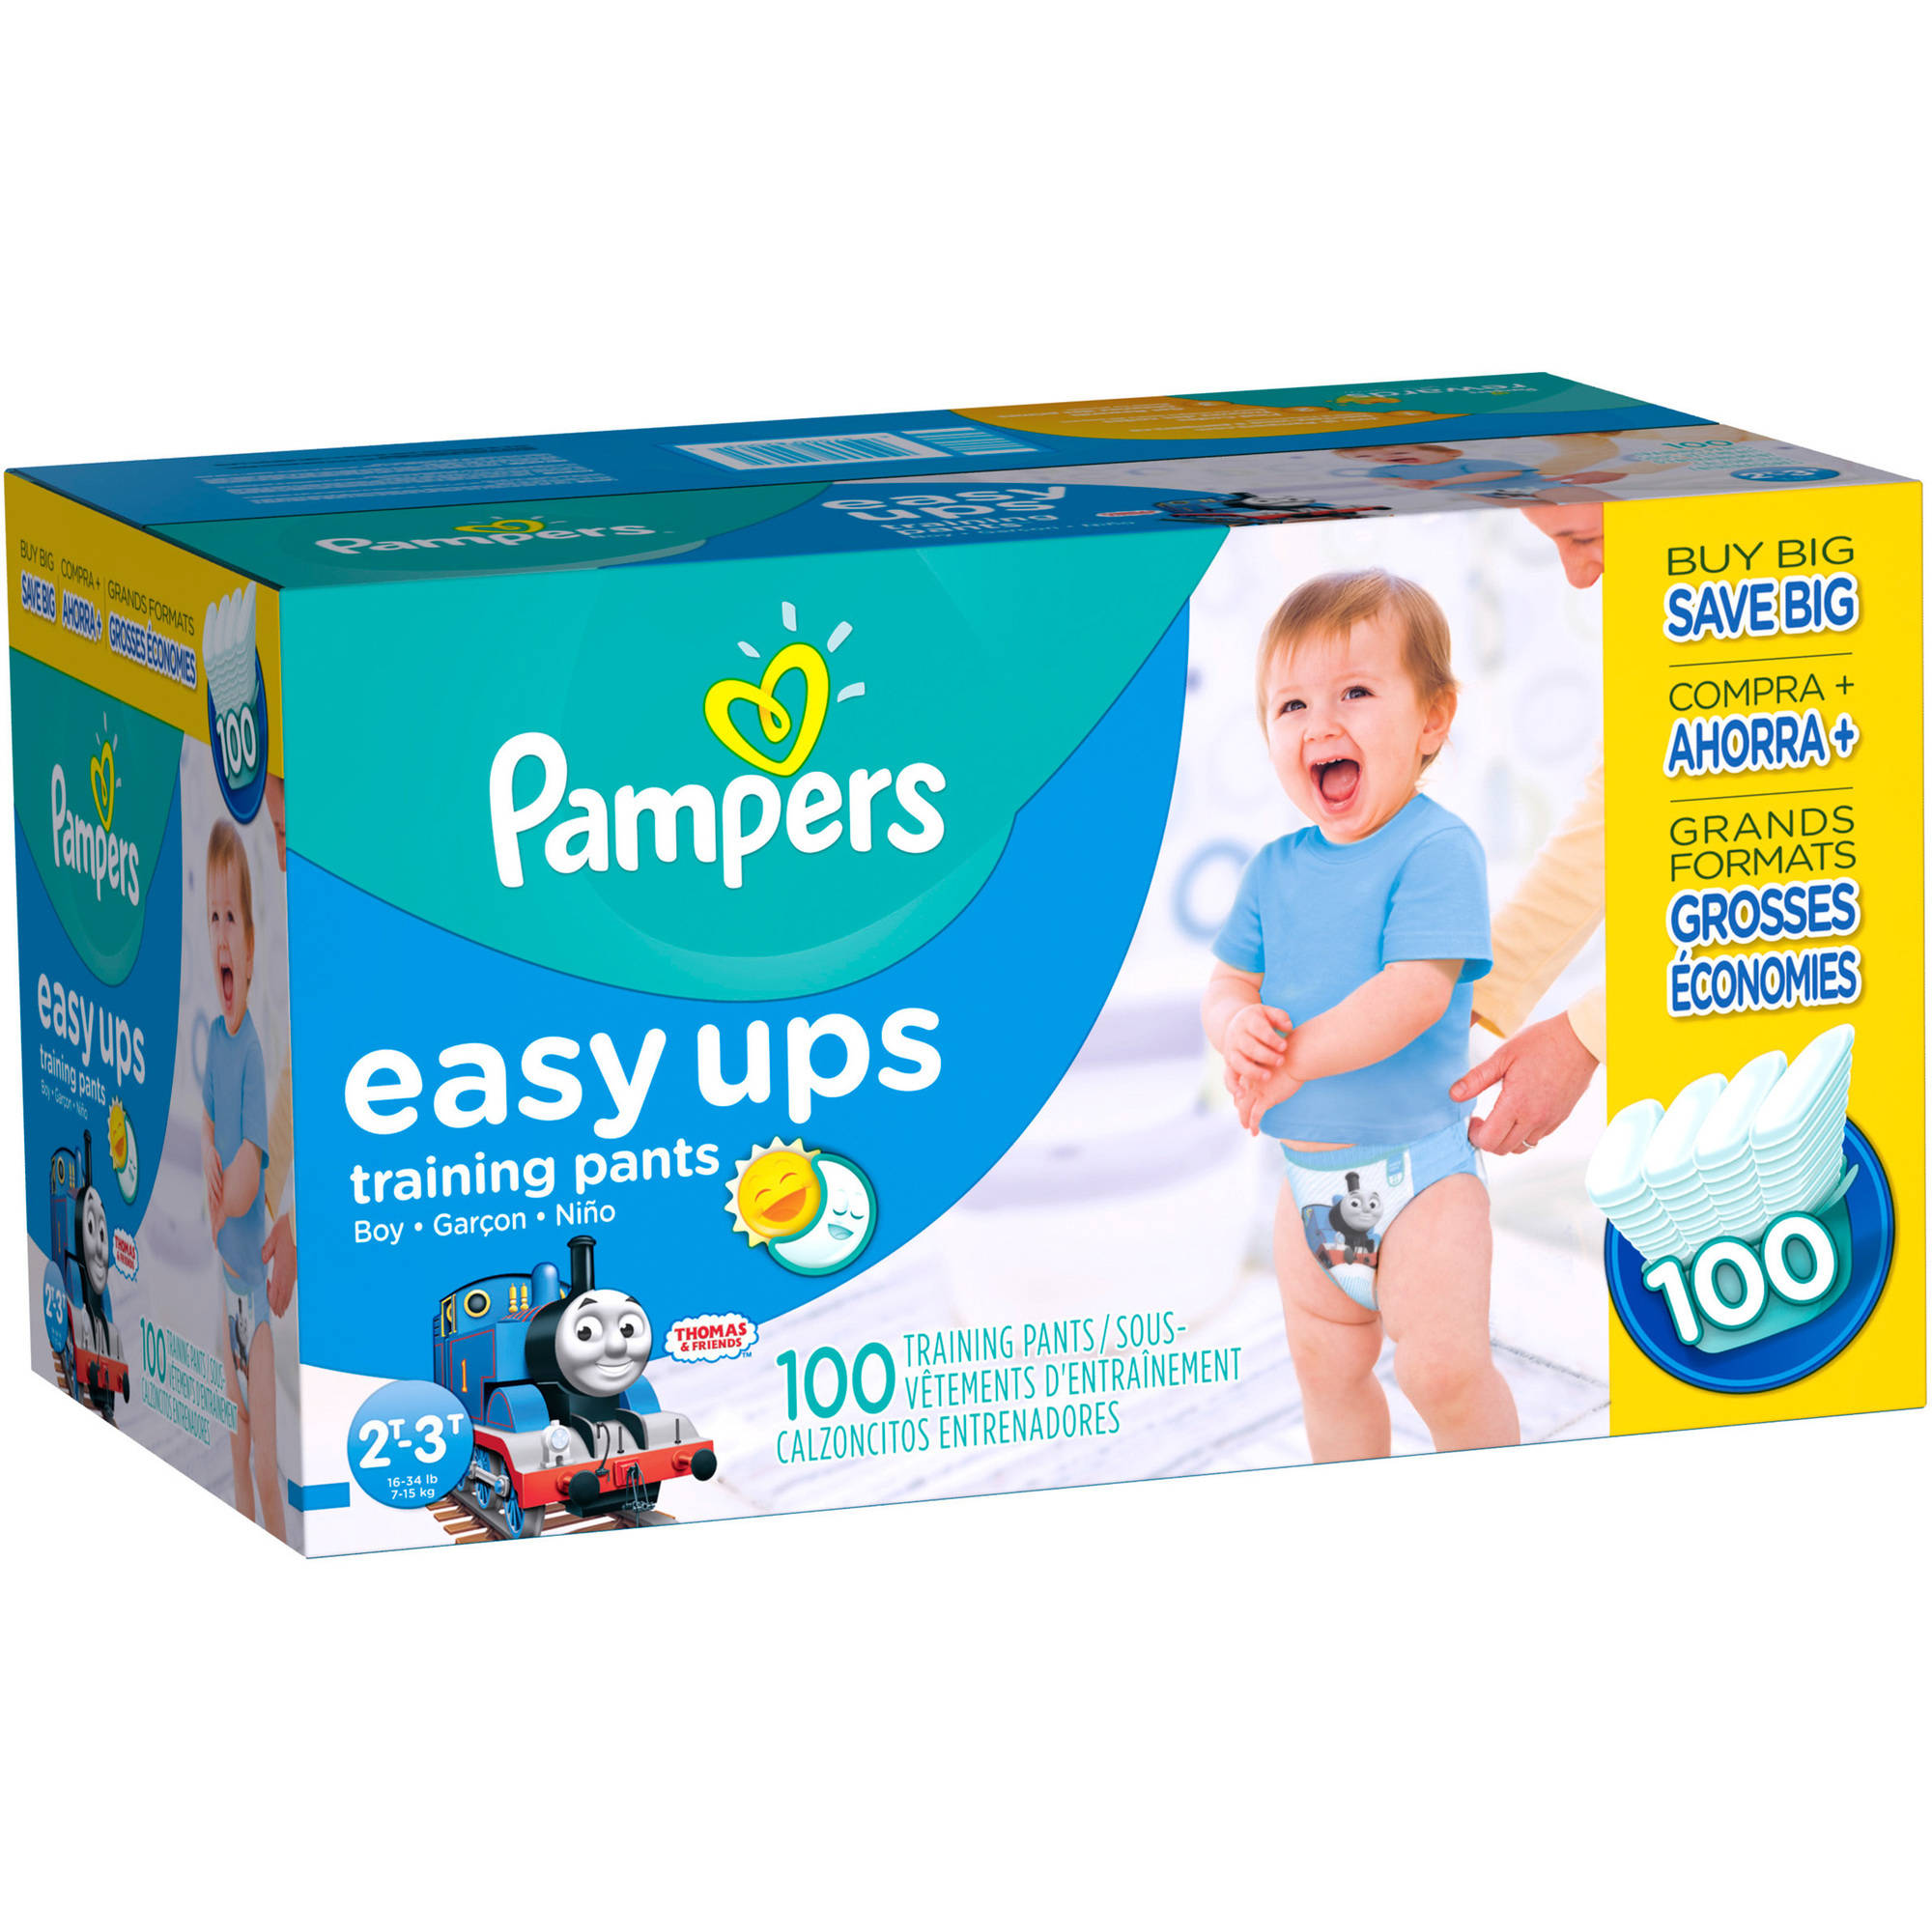 Pampers Easy Ups Boys Training Pants, Value Pack (Choose Your Size)